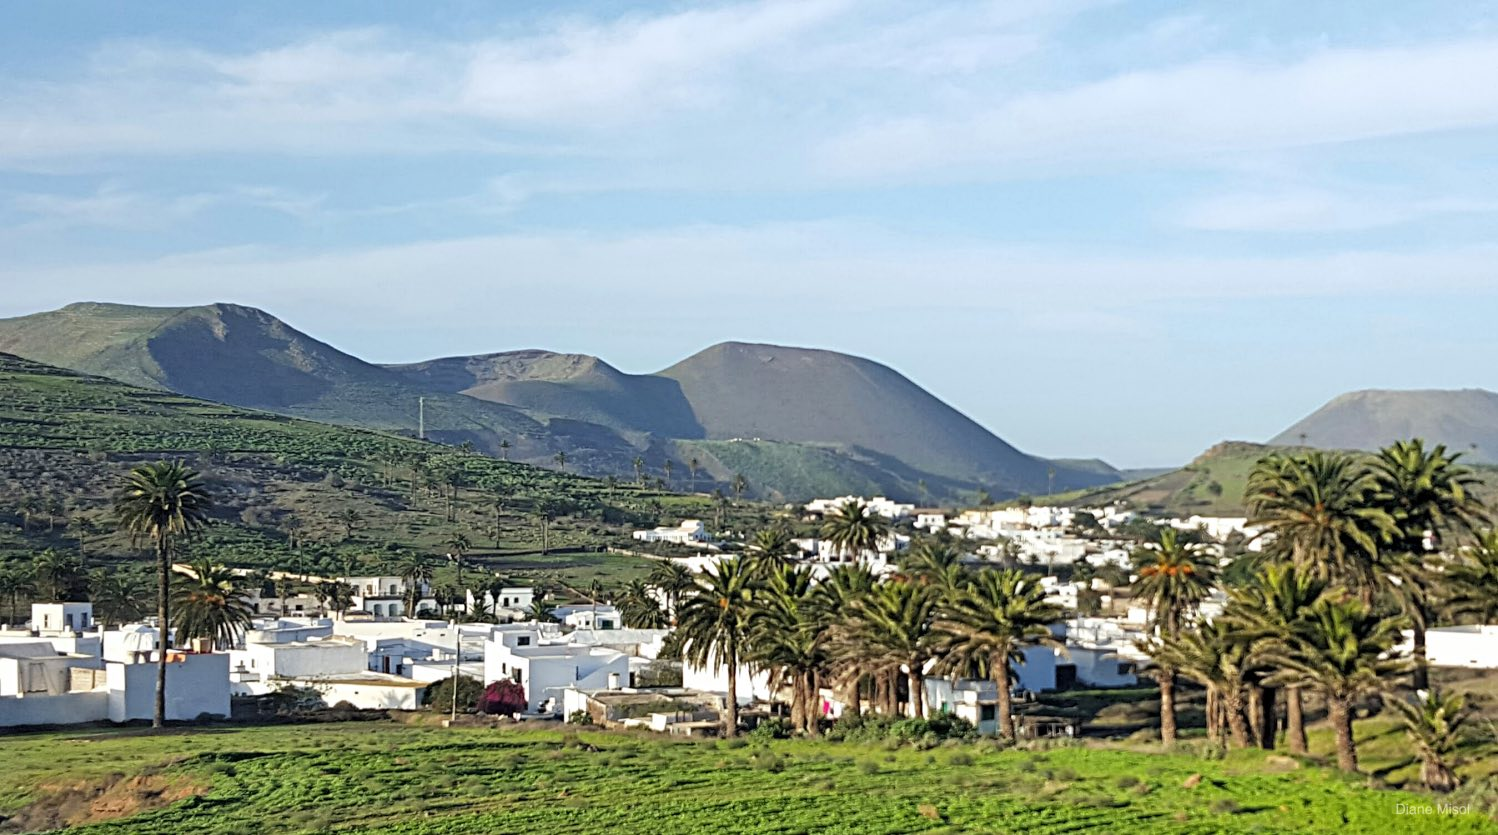 Village in the hills, Lanzarote, Spain